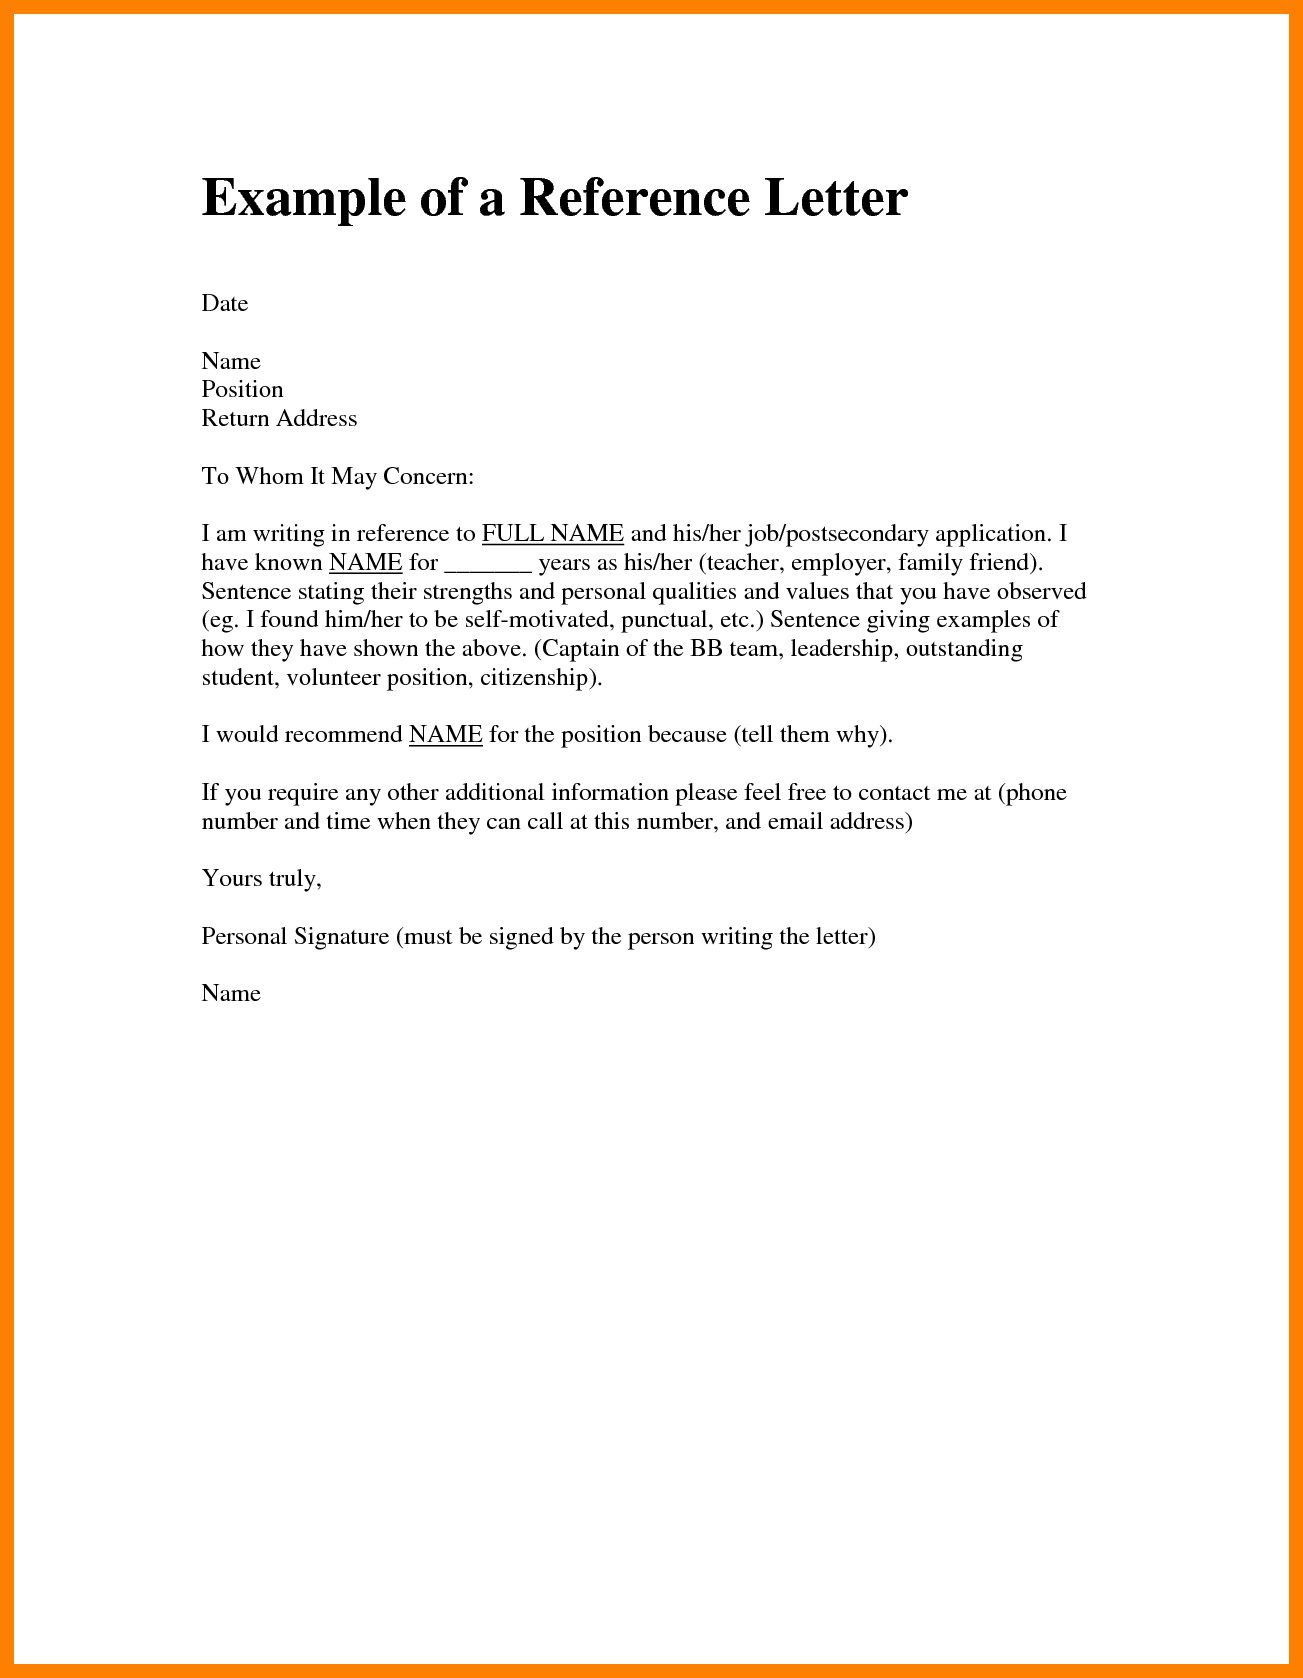 Reference Letter For Citizenship Sample from www.addictionary.org